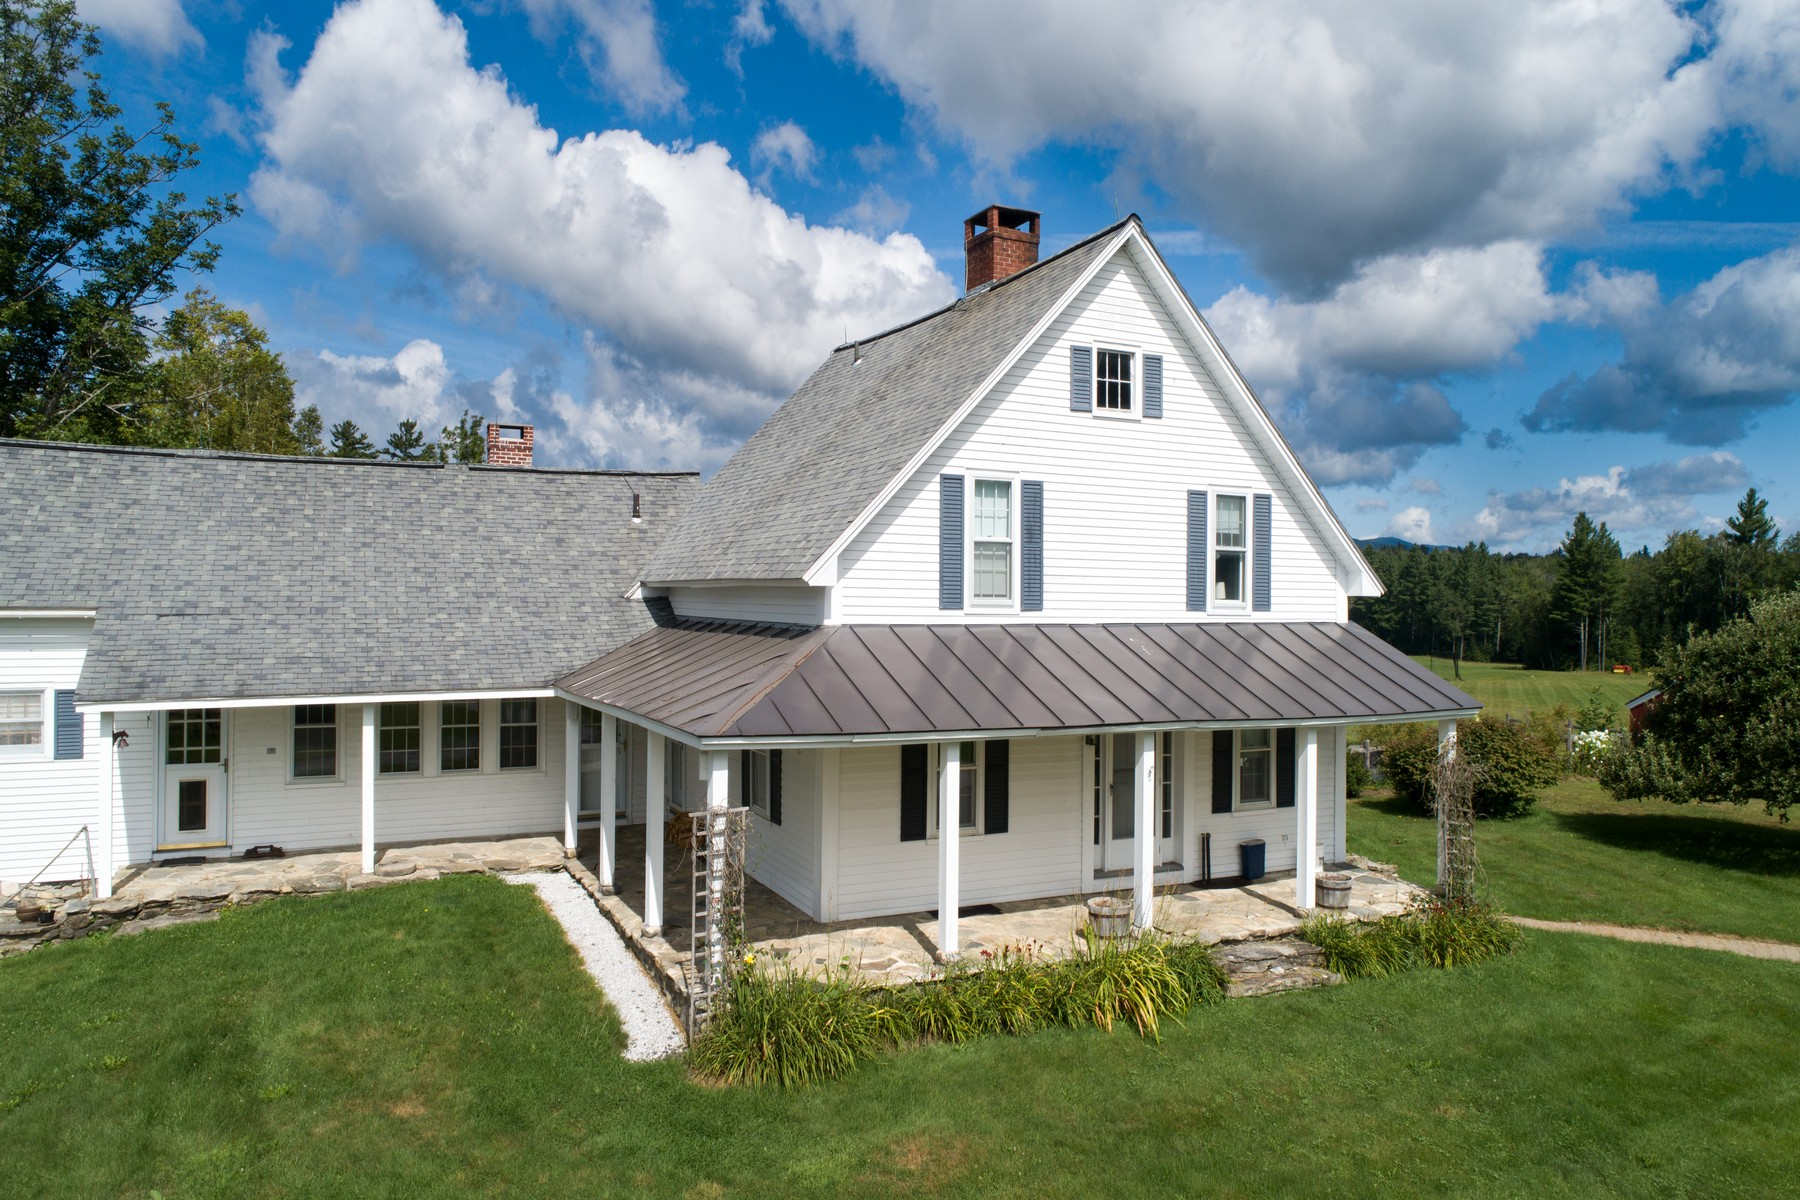 Residenza monofamiliare in vendita in 197 Winhall Hollow Rd, Winhall, Vermont ,05340